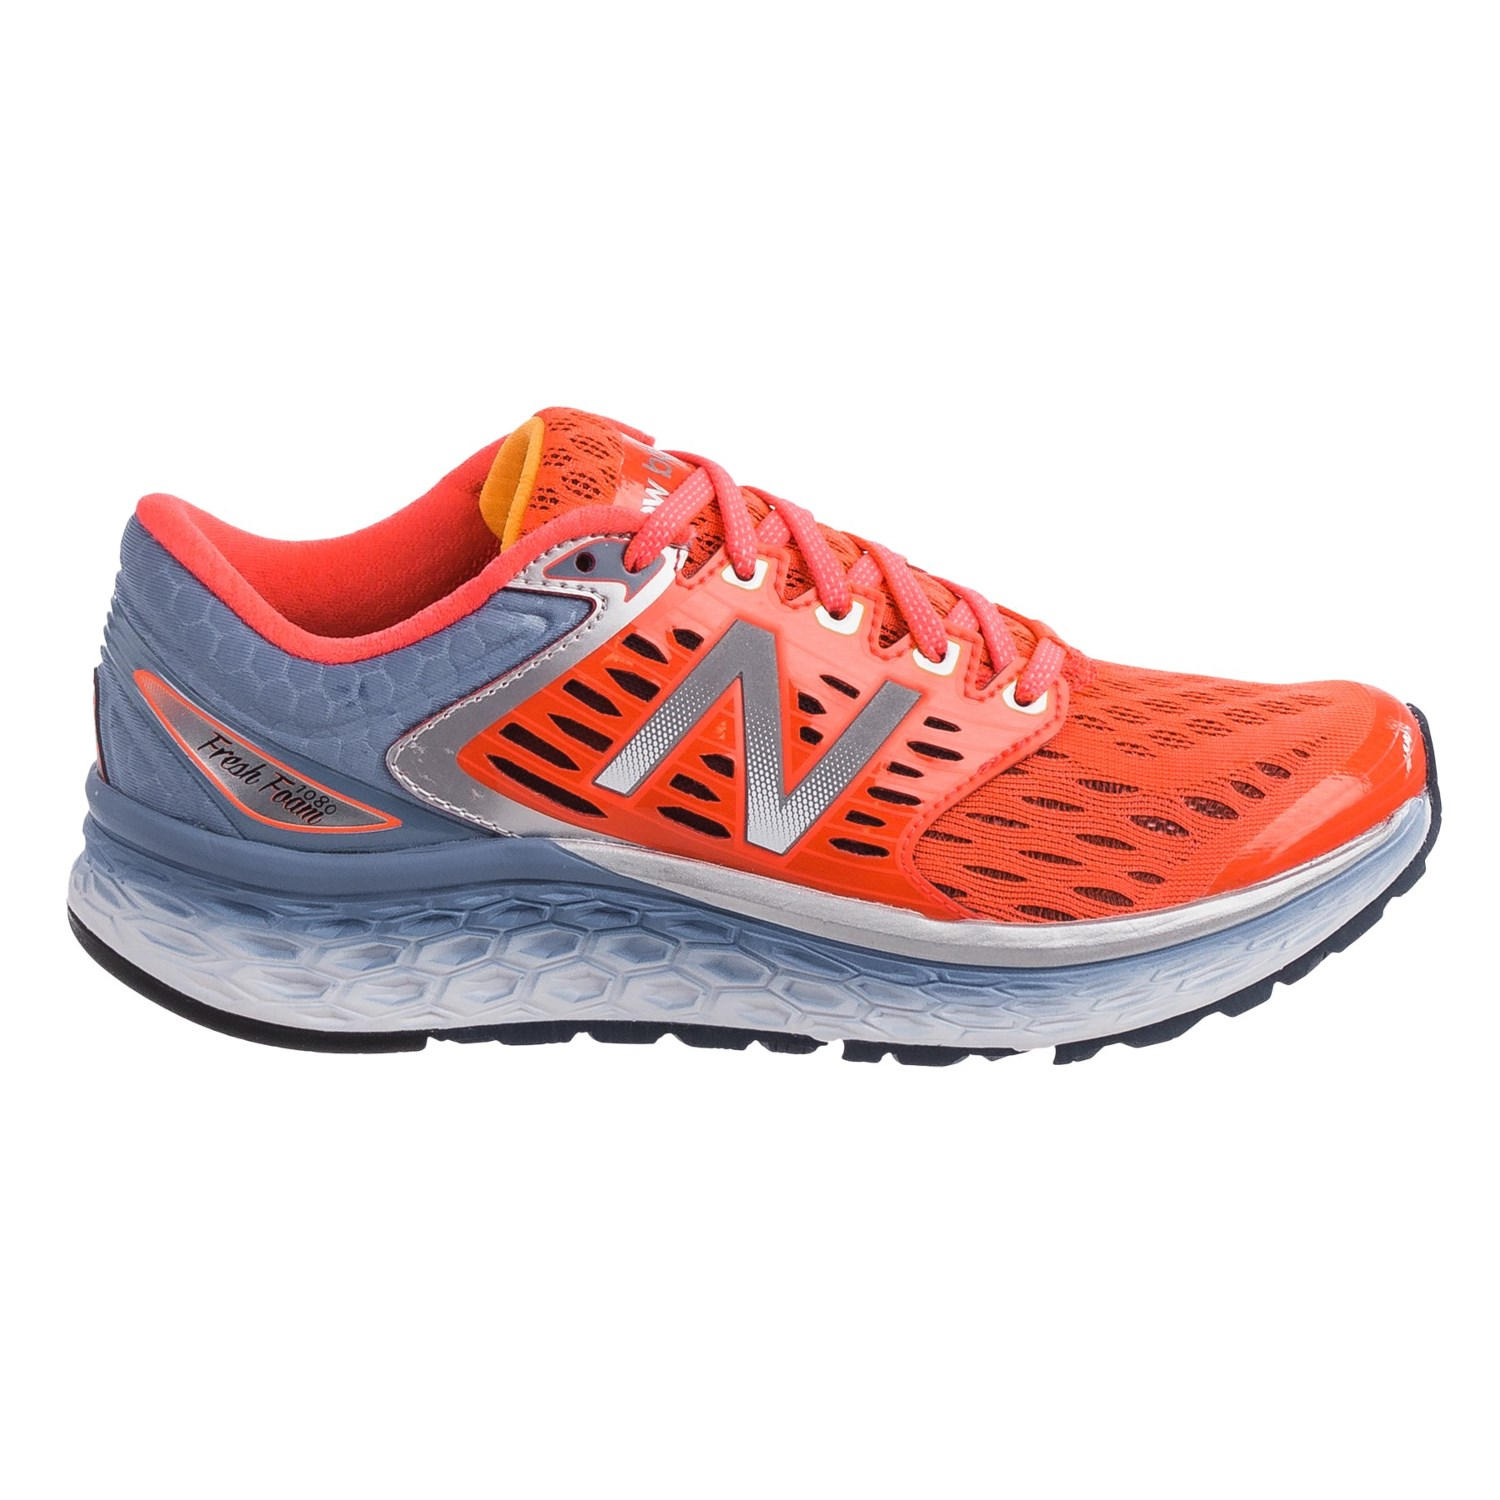 Sierra Trading Post Womens Running Shoes